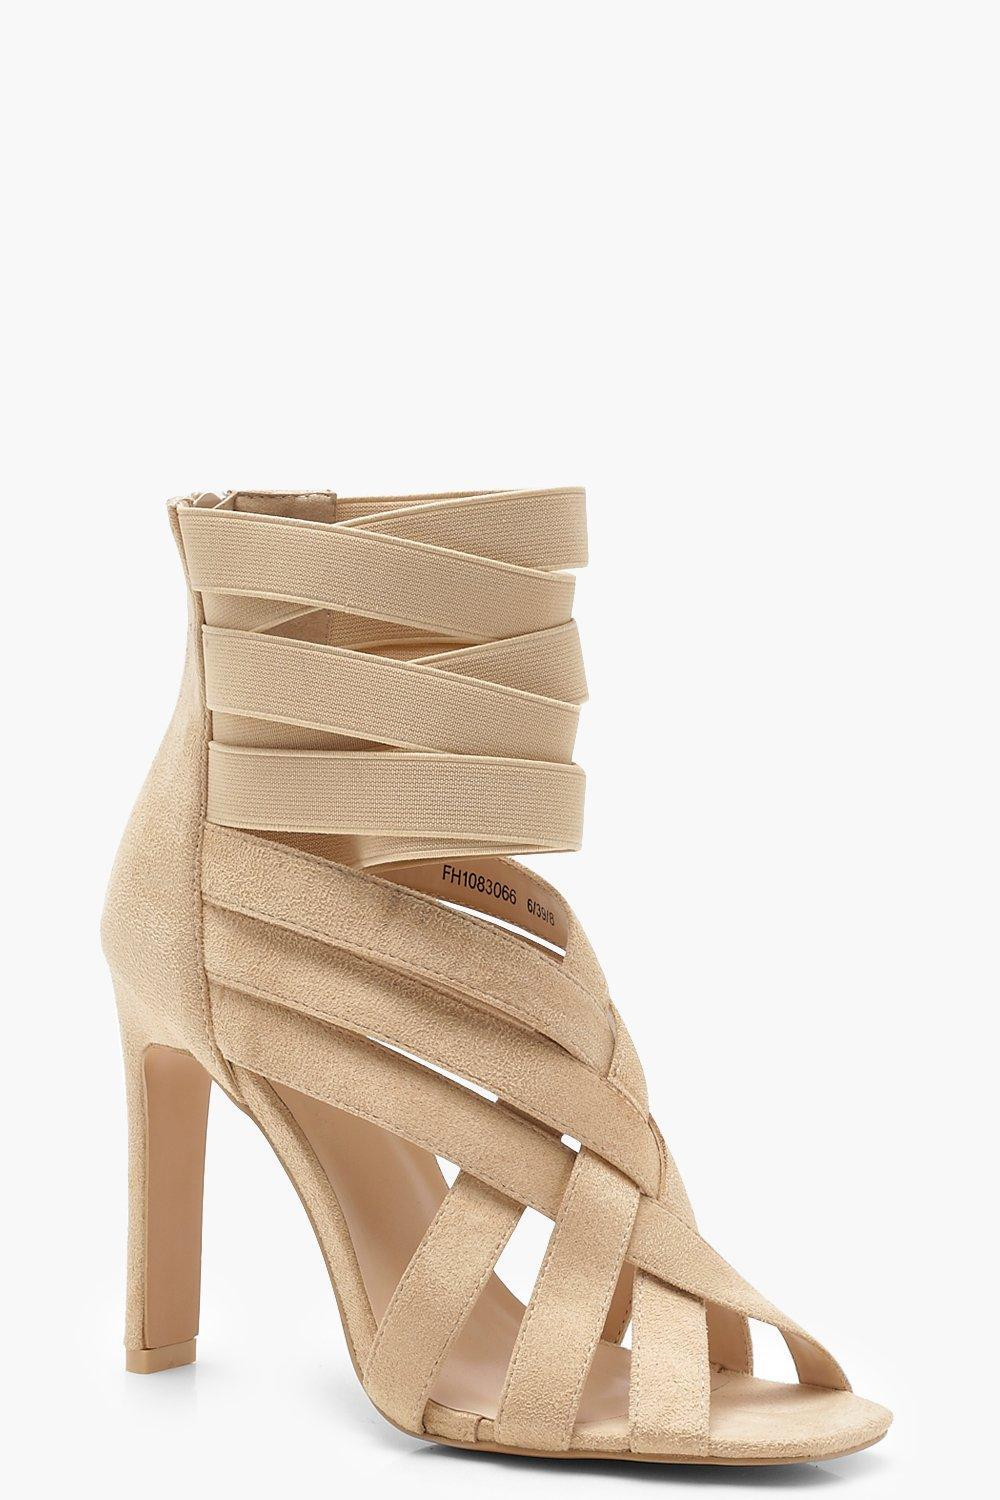 24bed33de2e Lyst - Boohoo Cross Strap Cage Sandals in Natural